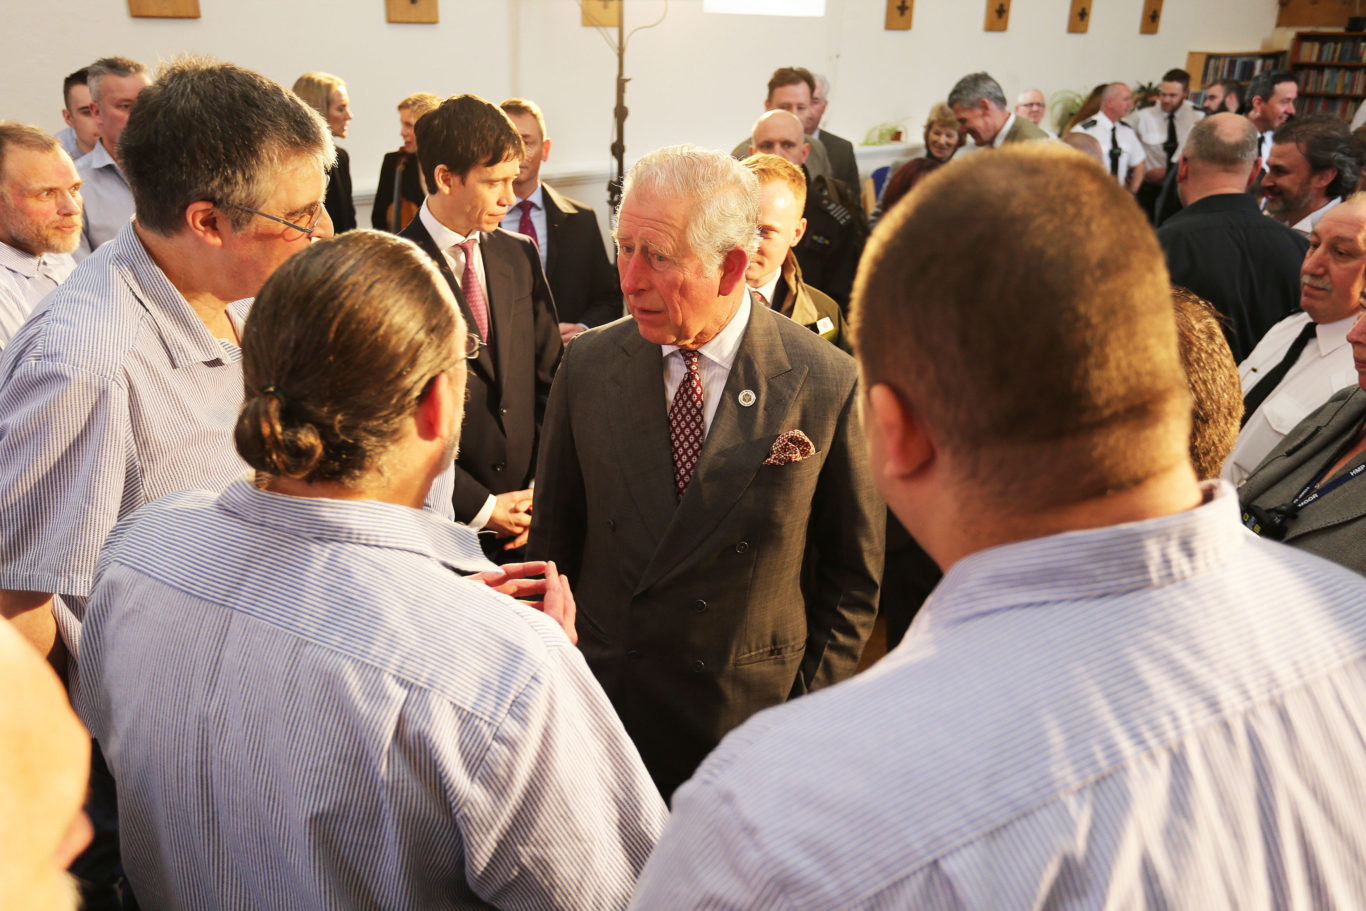 The Prince of Wales meets members of the prison choir (Marc Giddings/The Sun/PA)